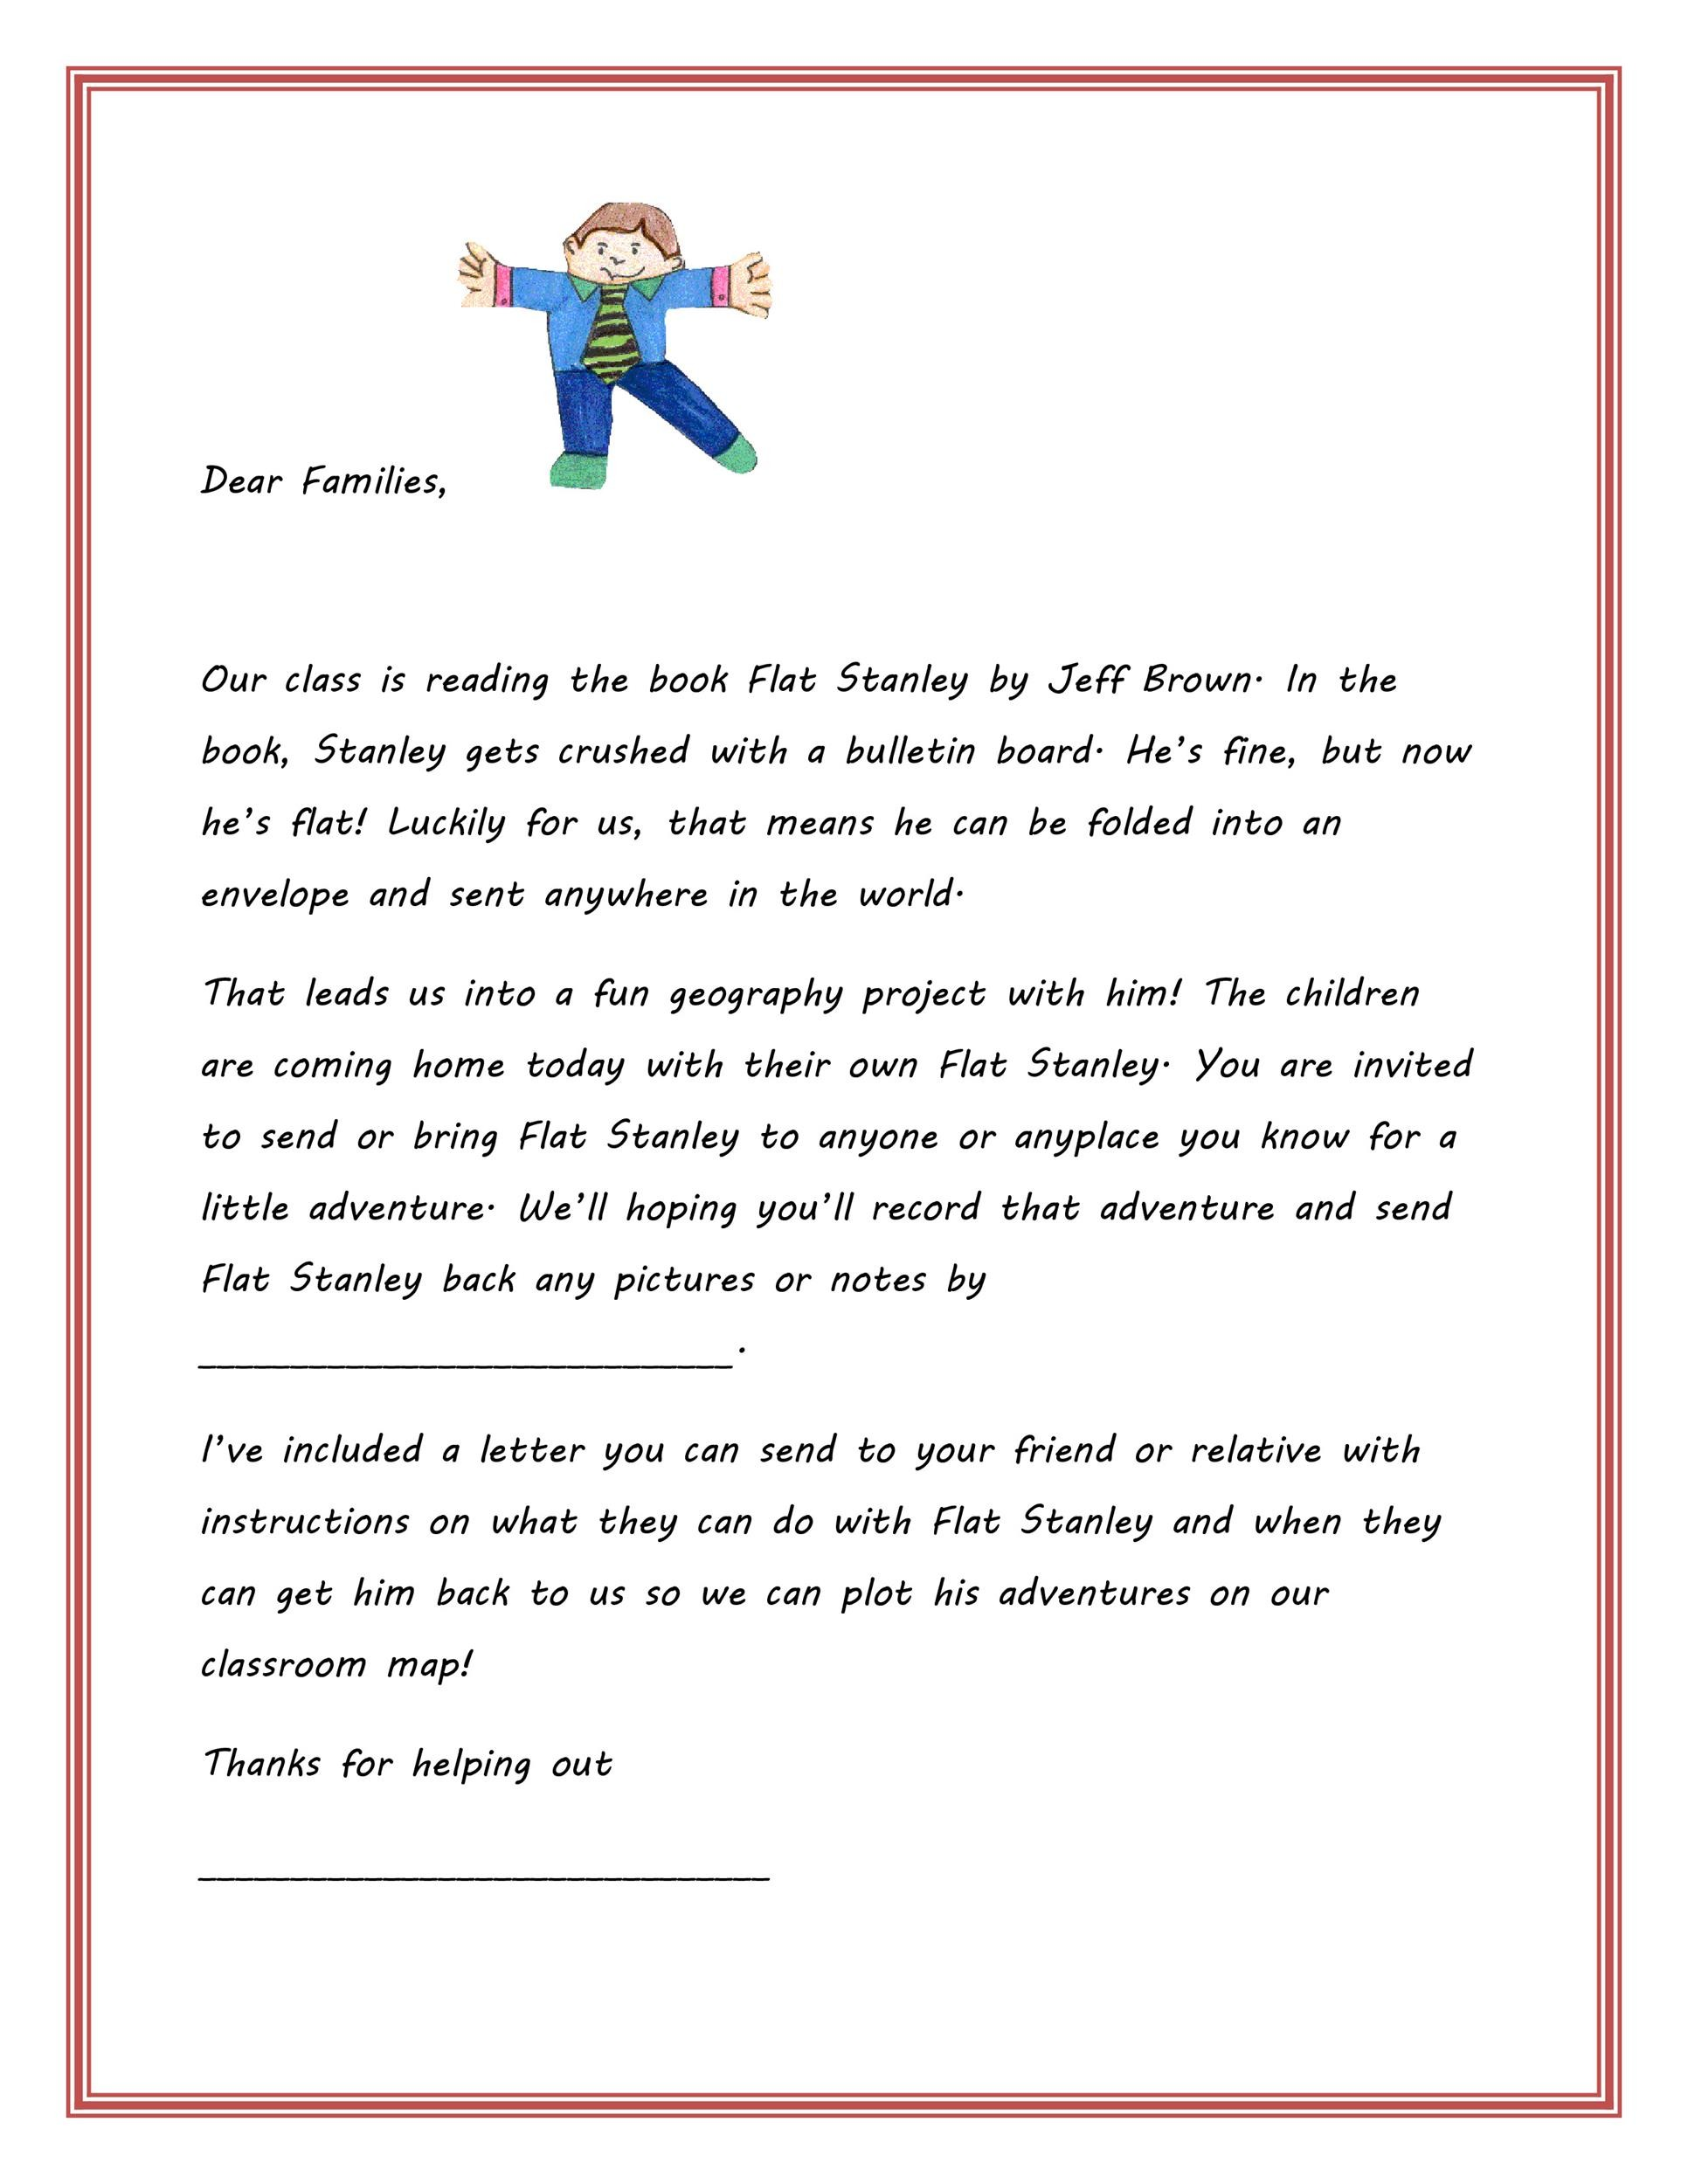 37 Flat Stanley Templates  Letter Examples - Template Lab - response letter template